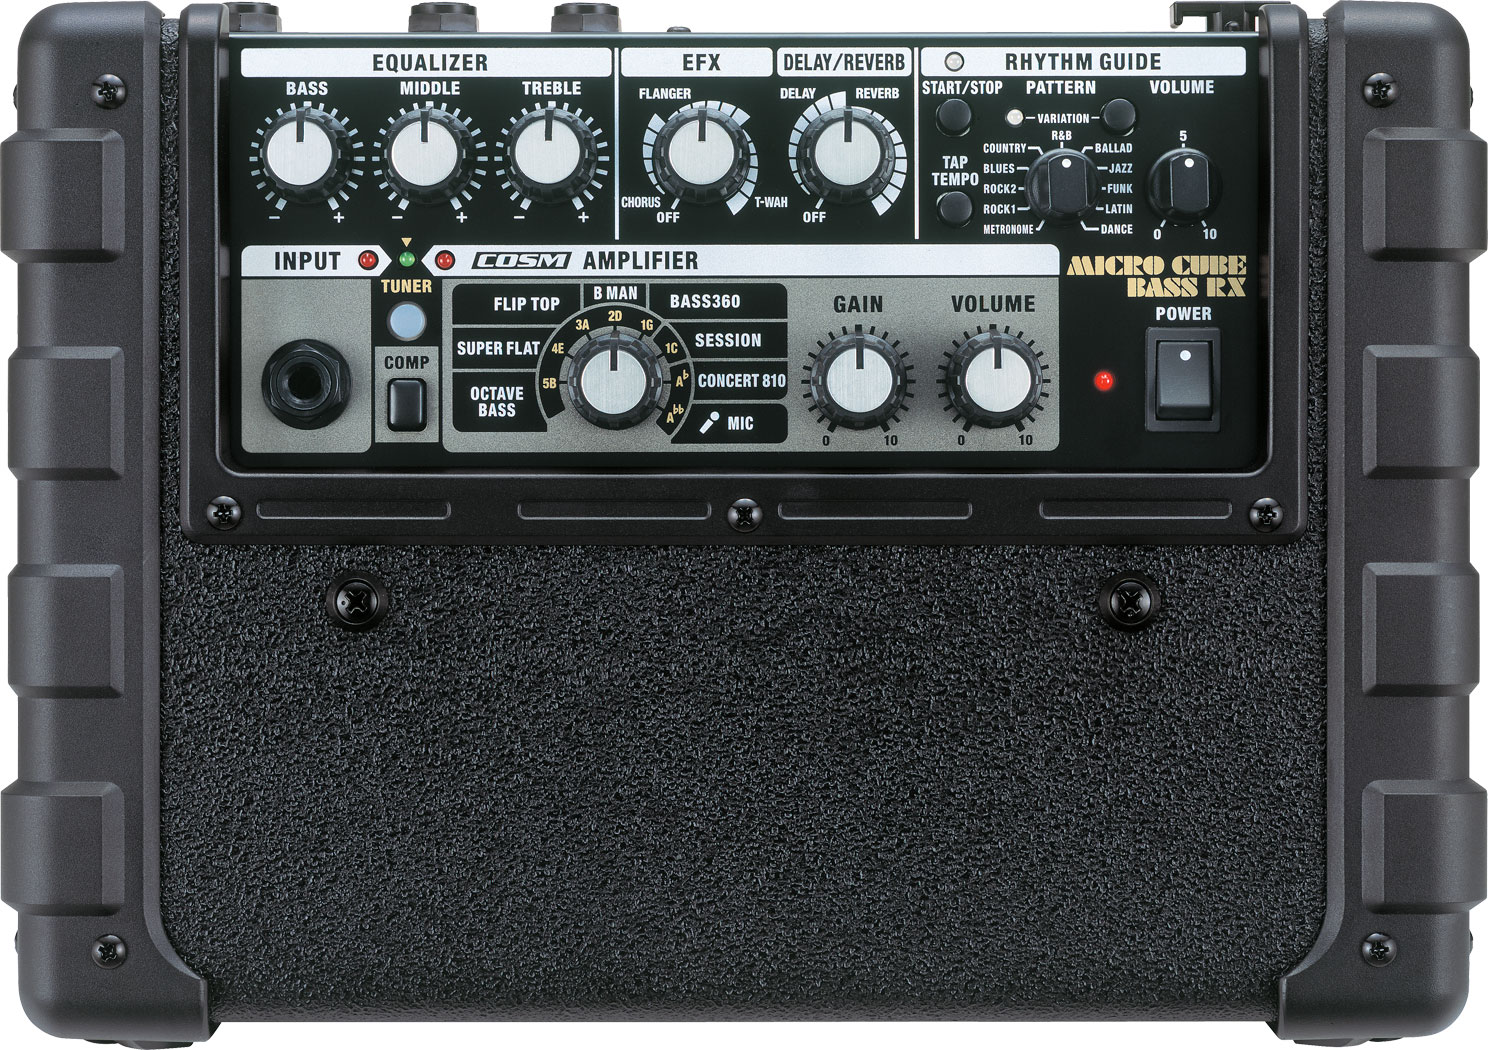 Roland Micro Cube Bass Rx Amplifier Apmilifier Mini Guitar Circuit And Explanation